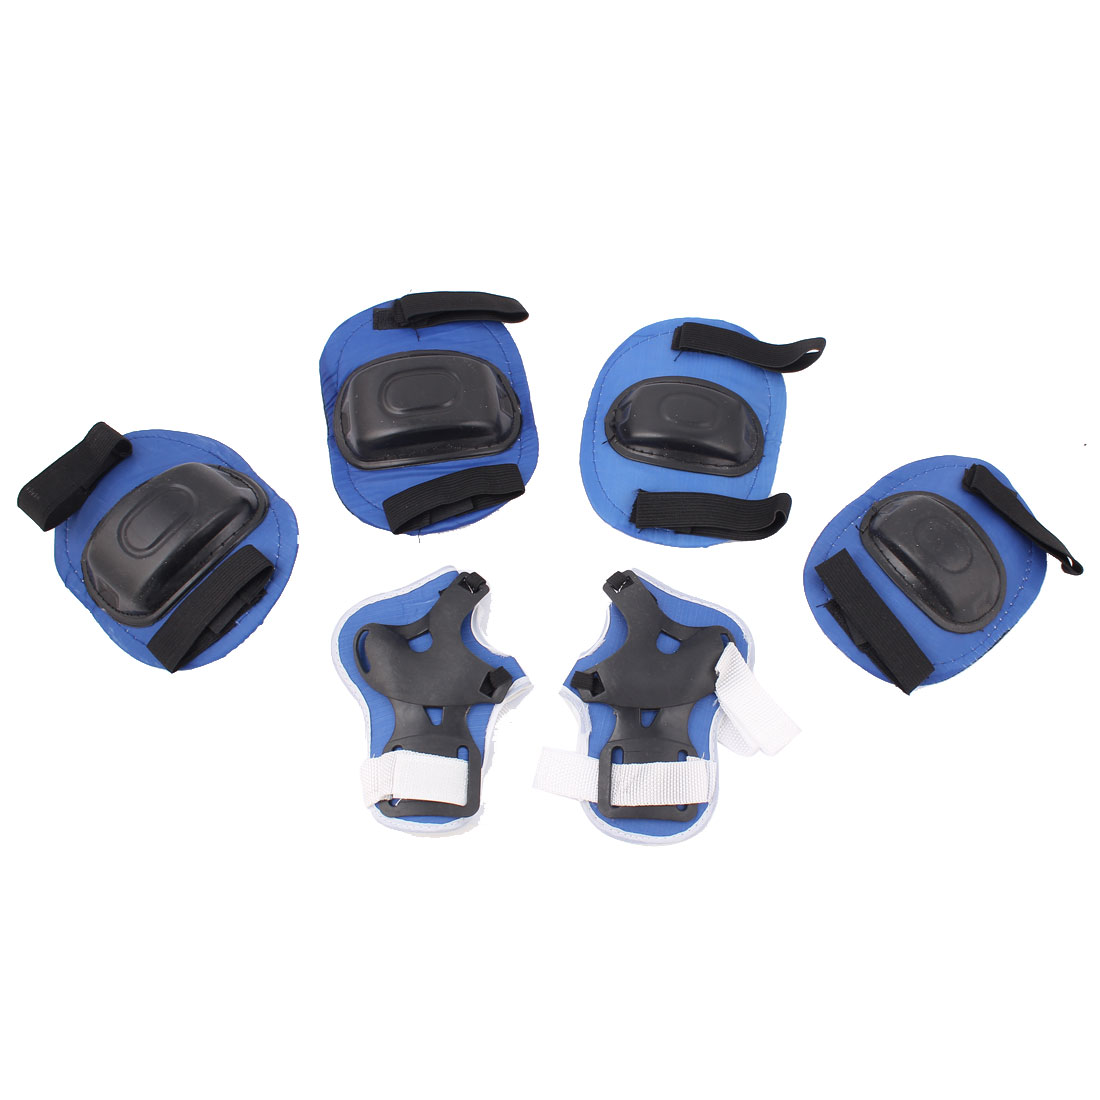 6 in 1 Skiing Skating Cycling Black Blue Palm Elbow Guard Knee Support Protector Pad Set w String Bag